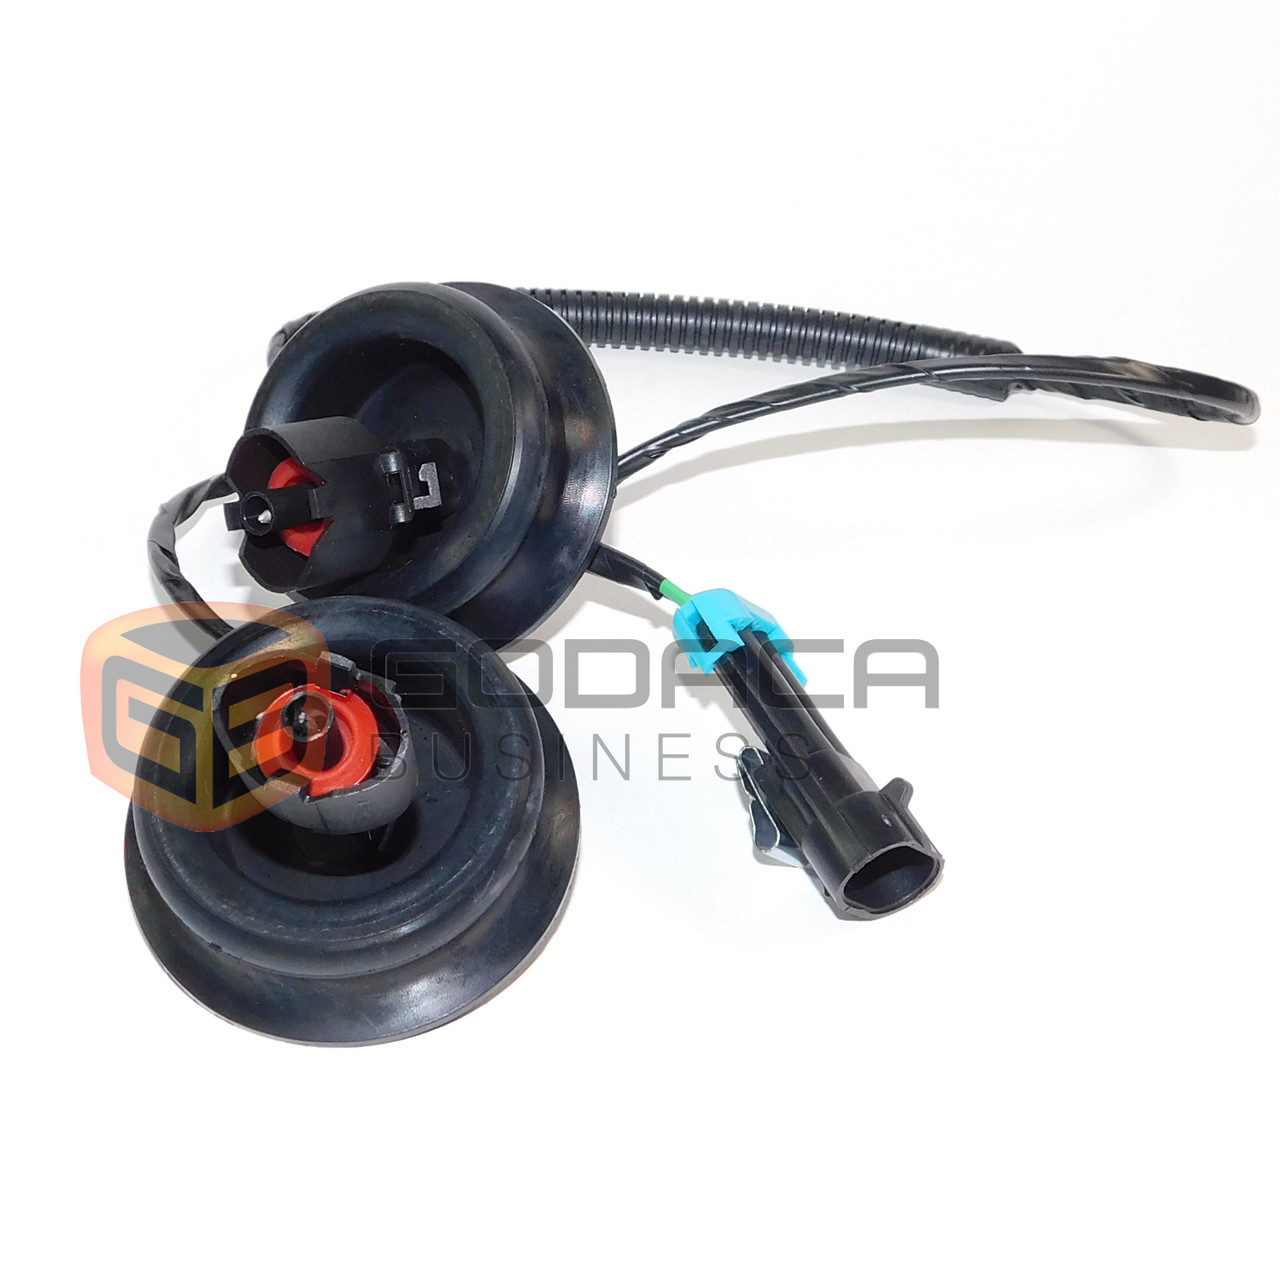 hight resolution of 1x harness for engine knock sensor dual connectors grommets cadillac chevy gmc godaca llc